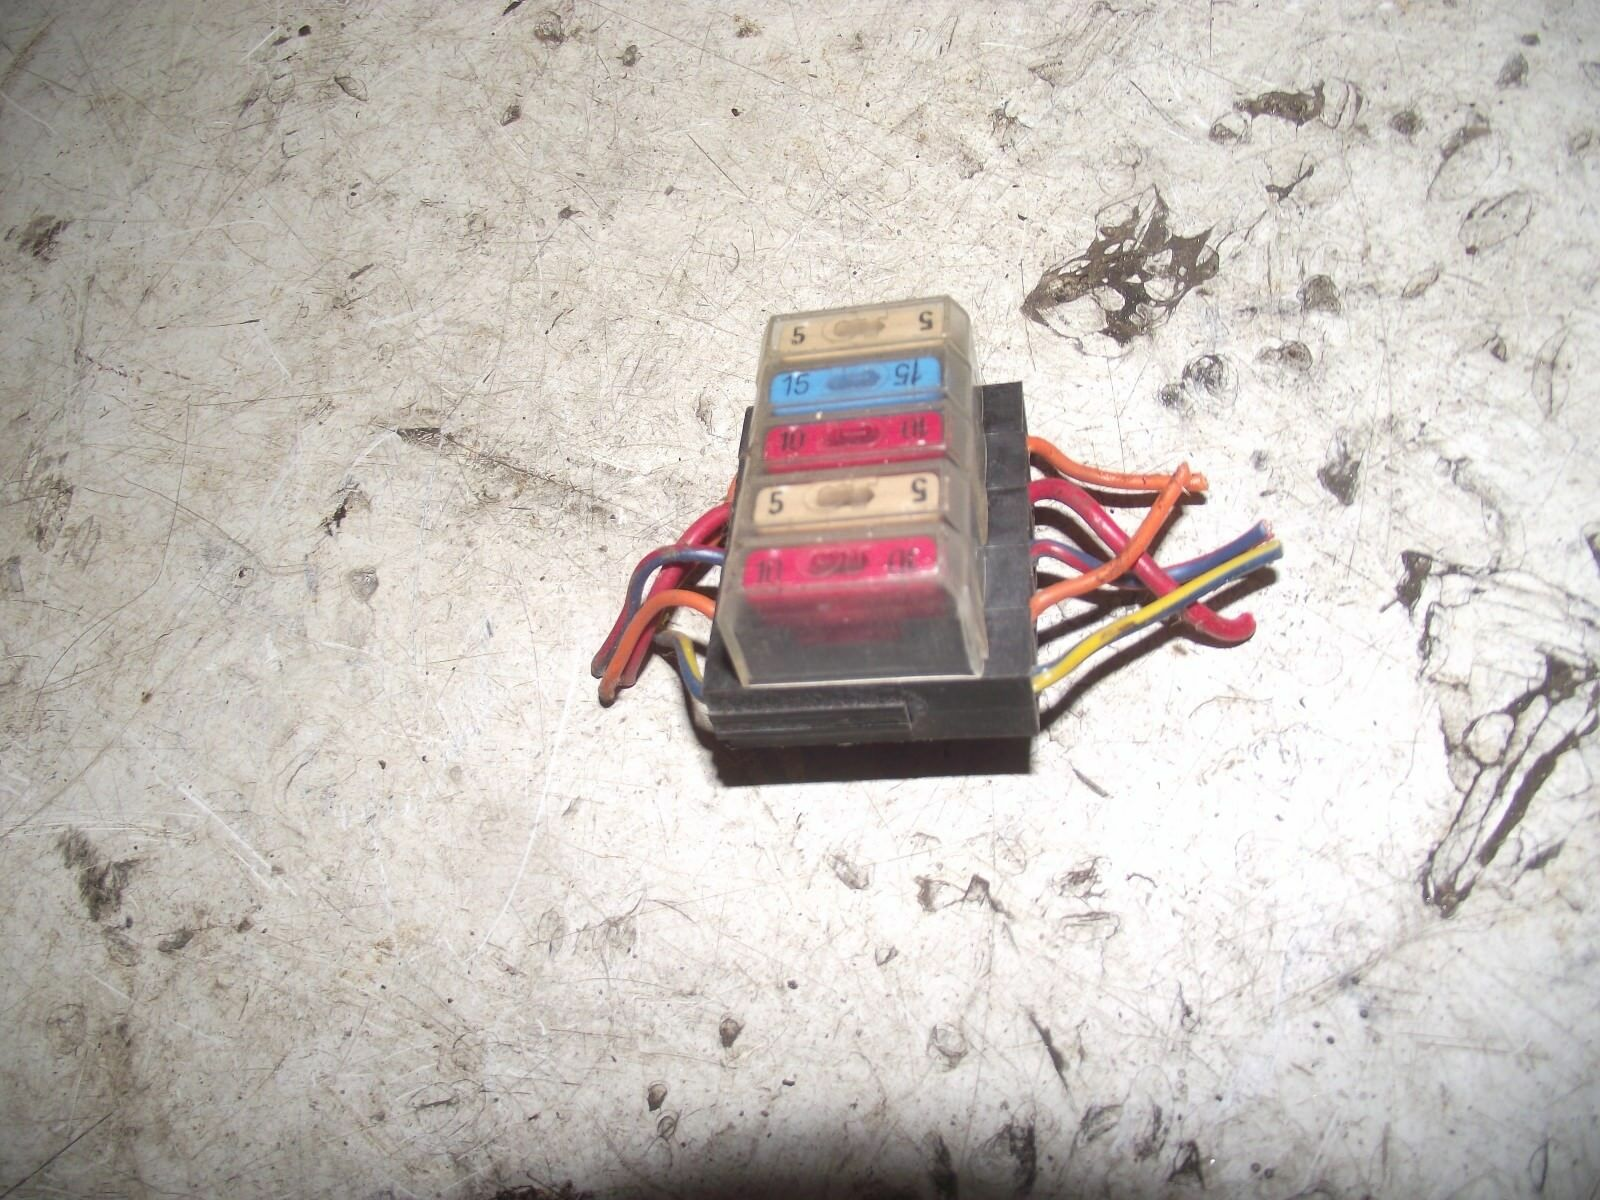 Daihatsu Fourtrak 2.8 Diesel 1994 Fuse Block 1 of 1Only 1 available ...